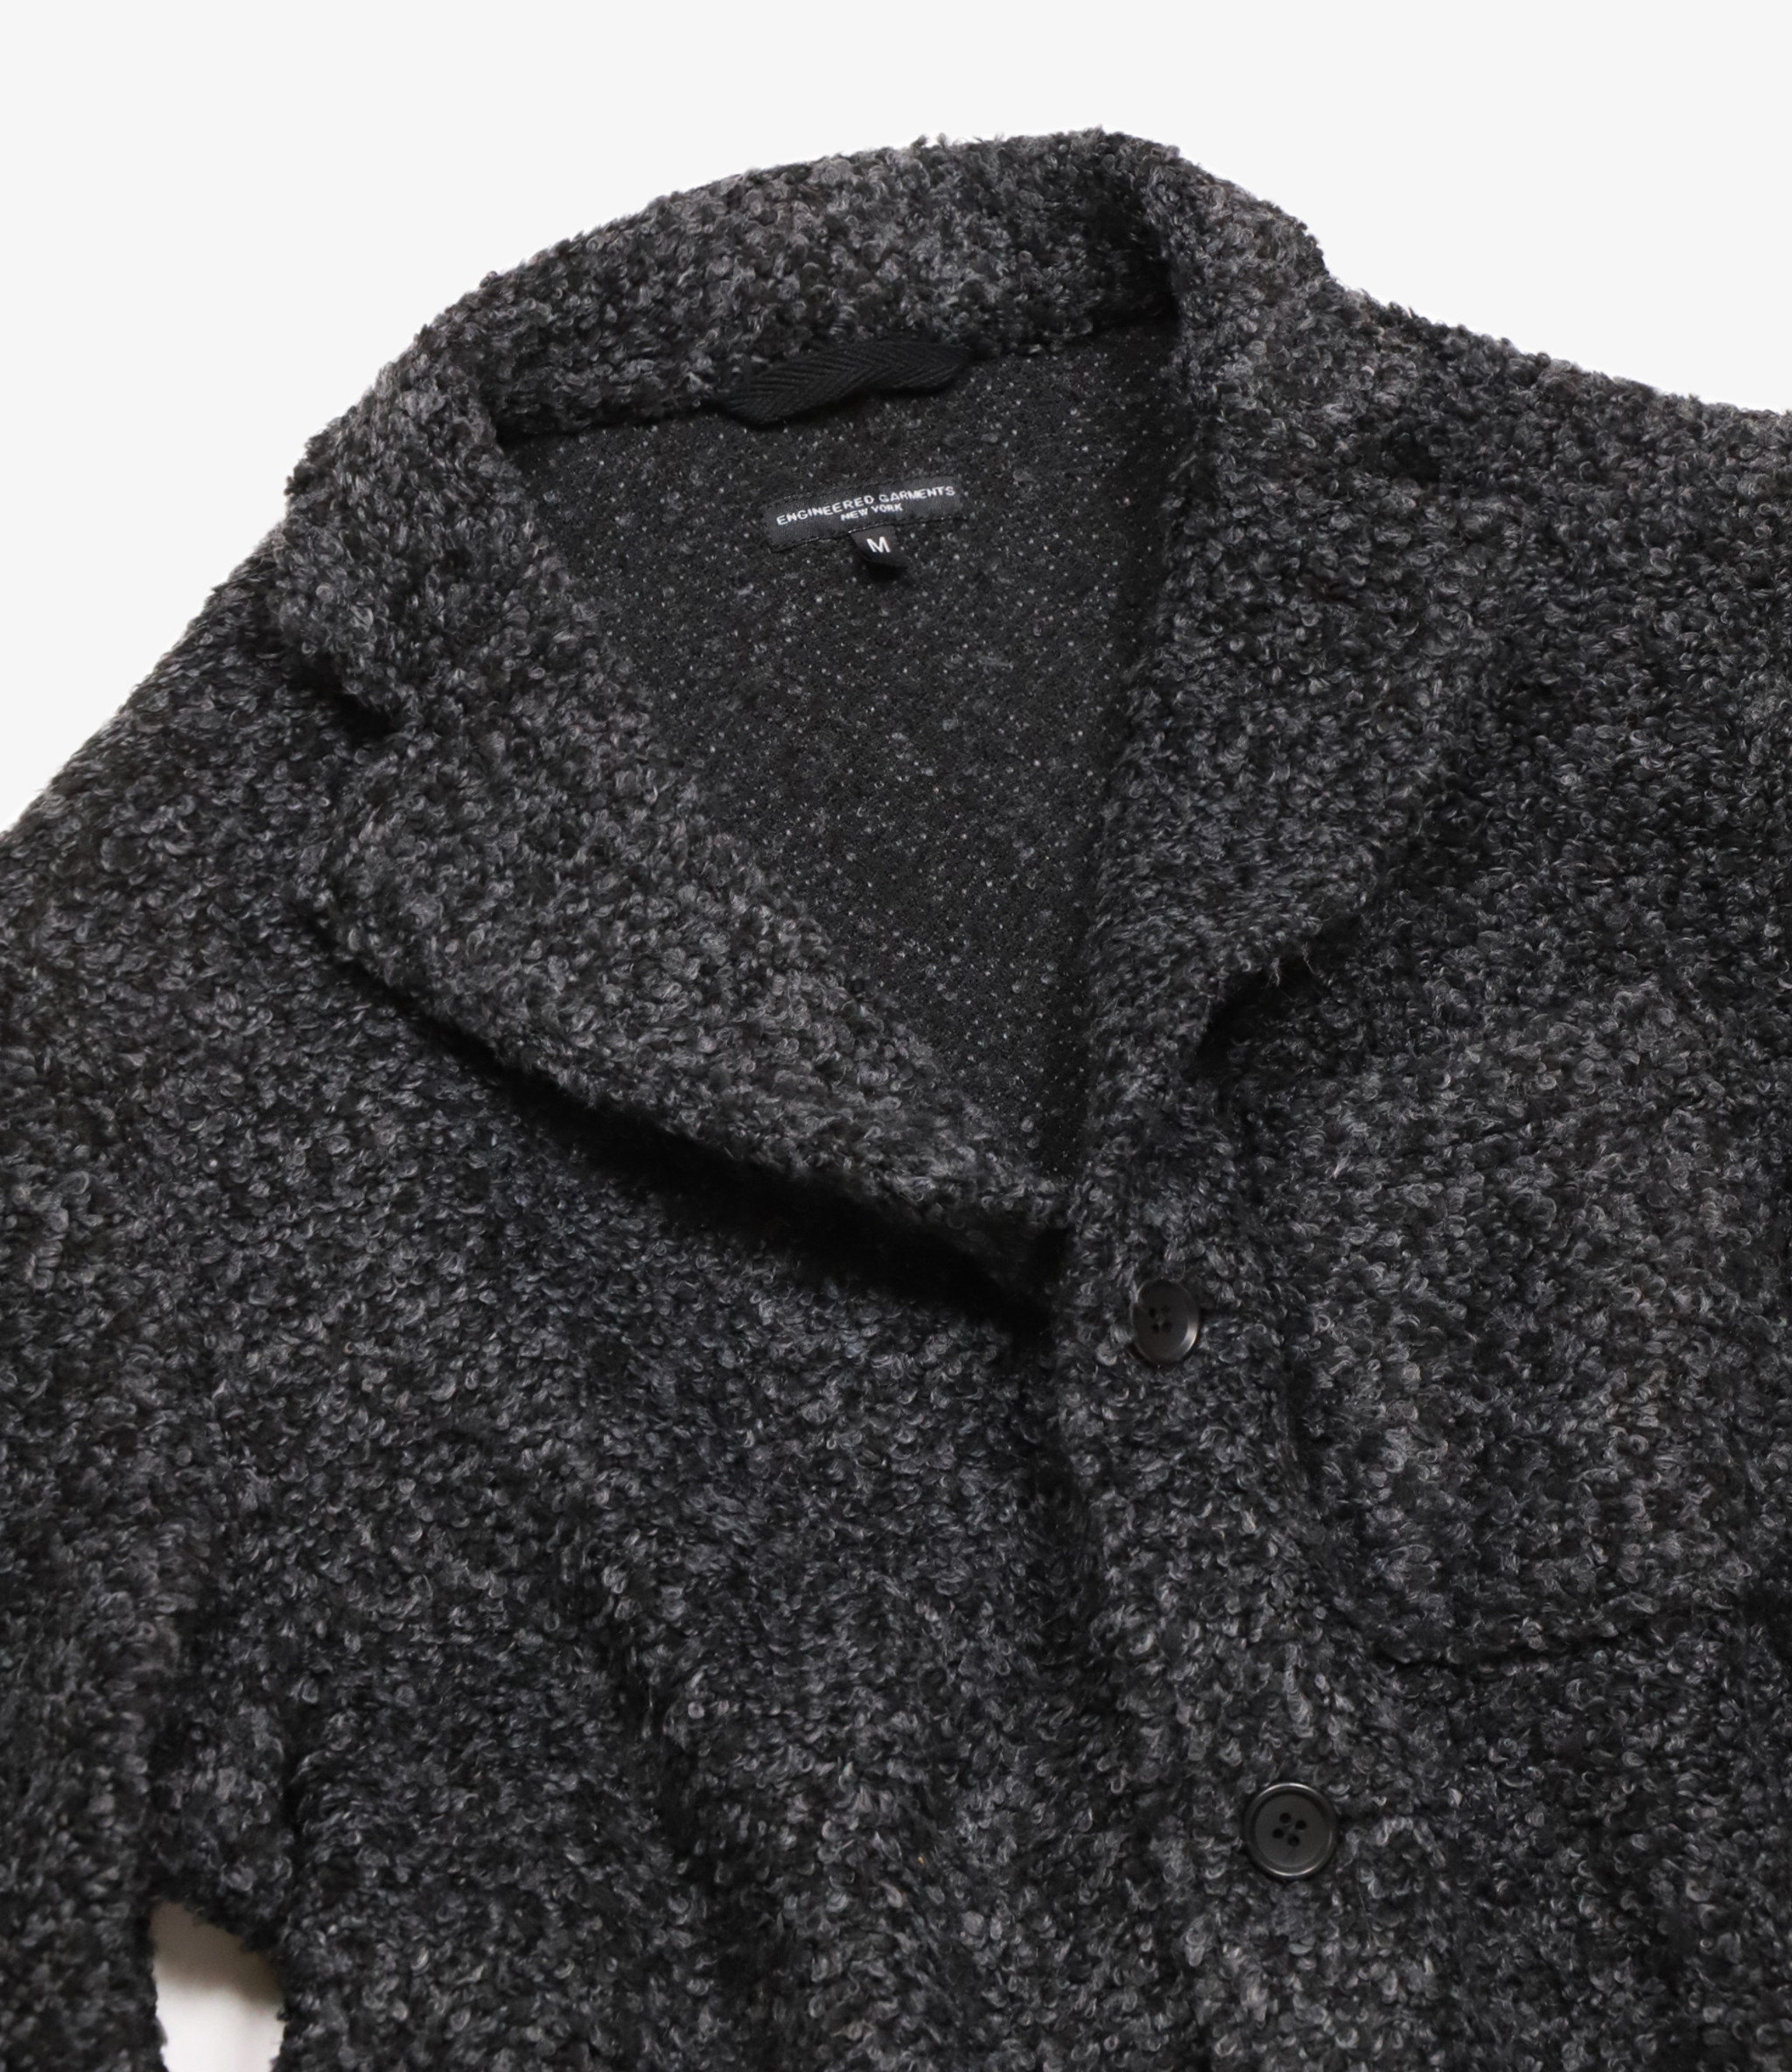 Engineered Garments Knit Jacket - Charcoal Poly Acrylic Curly Knit